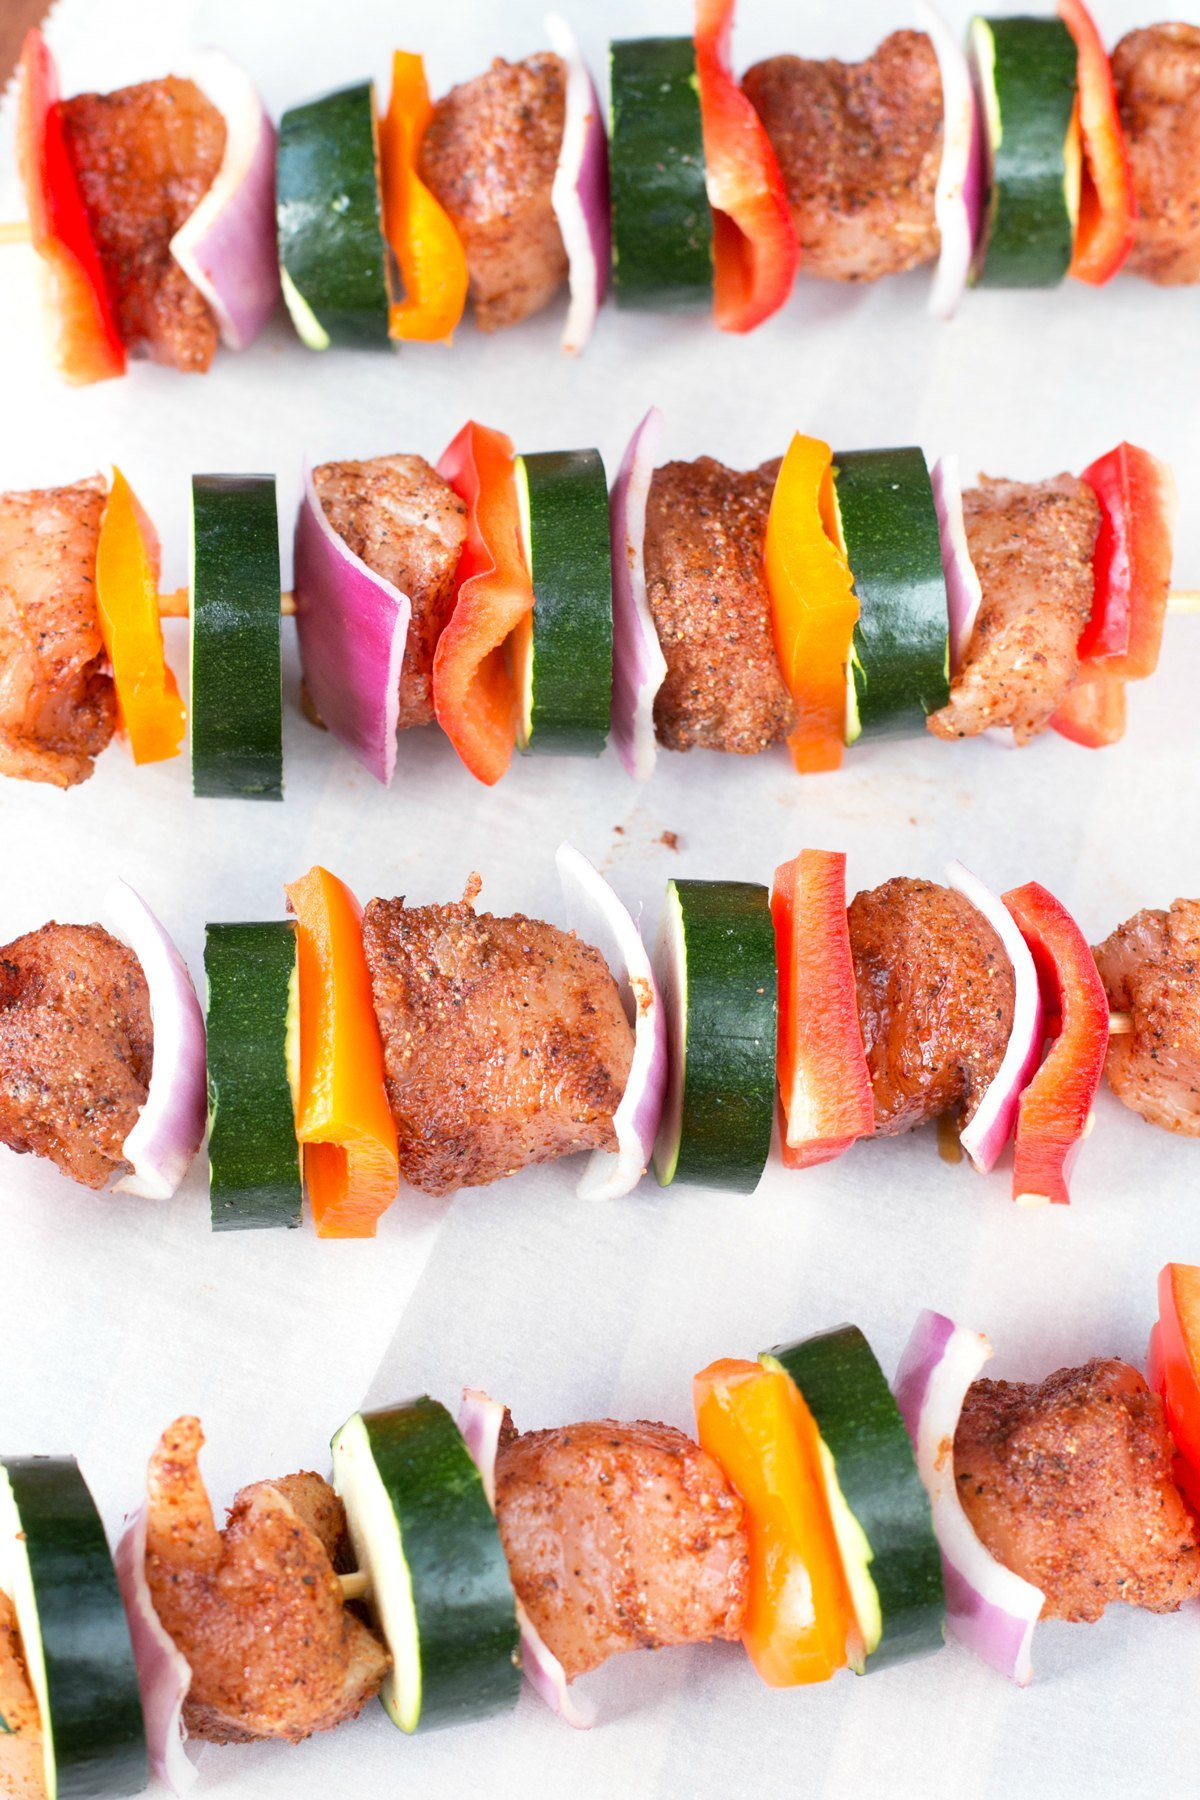 Chicken skewers with vegetables seasoned and waiting to be cooked